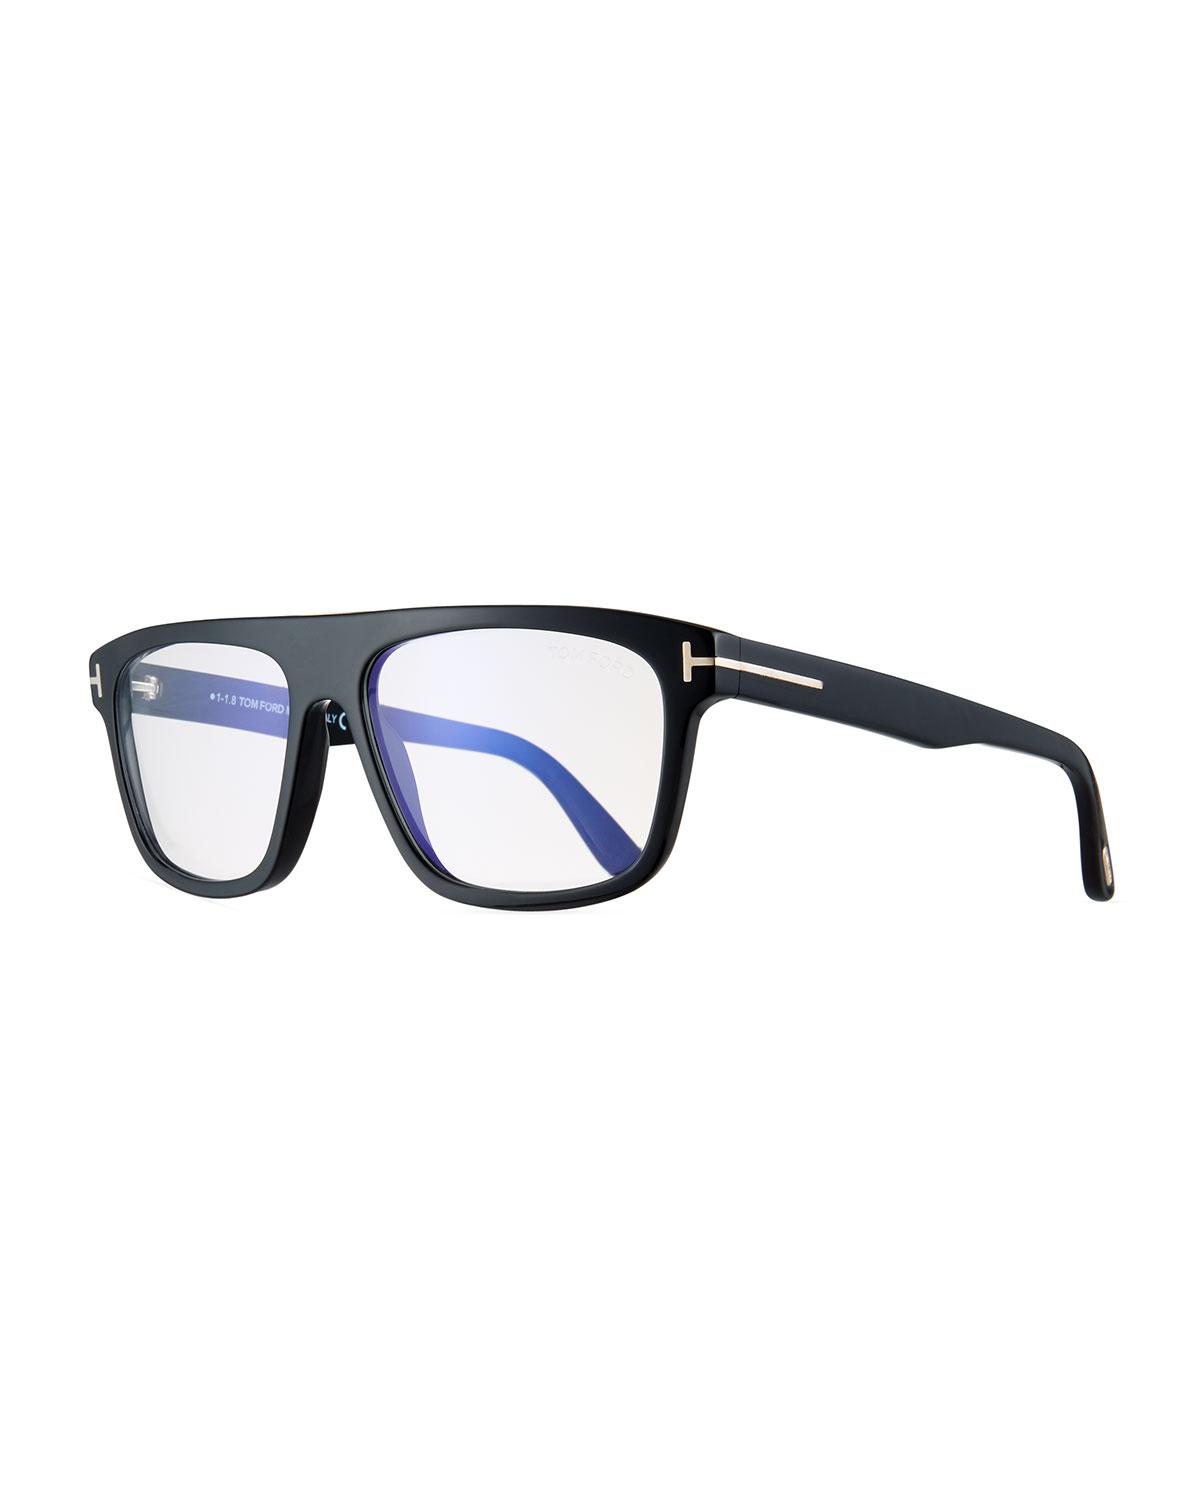 e9b42cbb90 Lyst - Tom Ford Men s Rectangular Acetate Eyeglasses in Black for Men